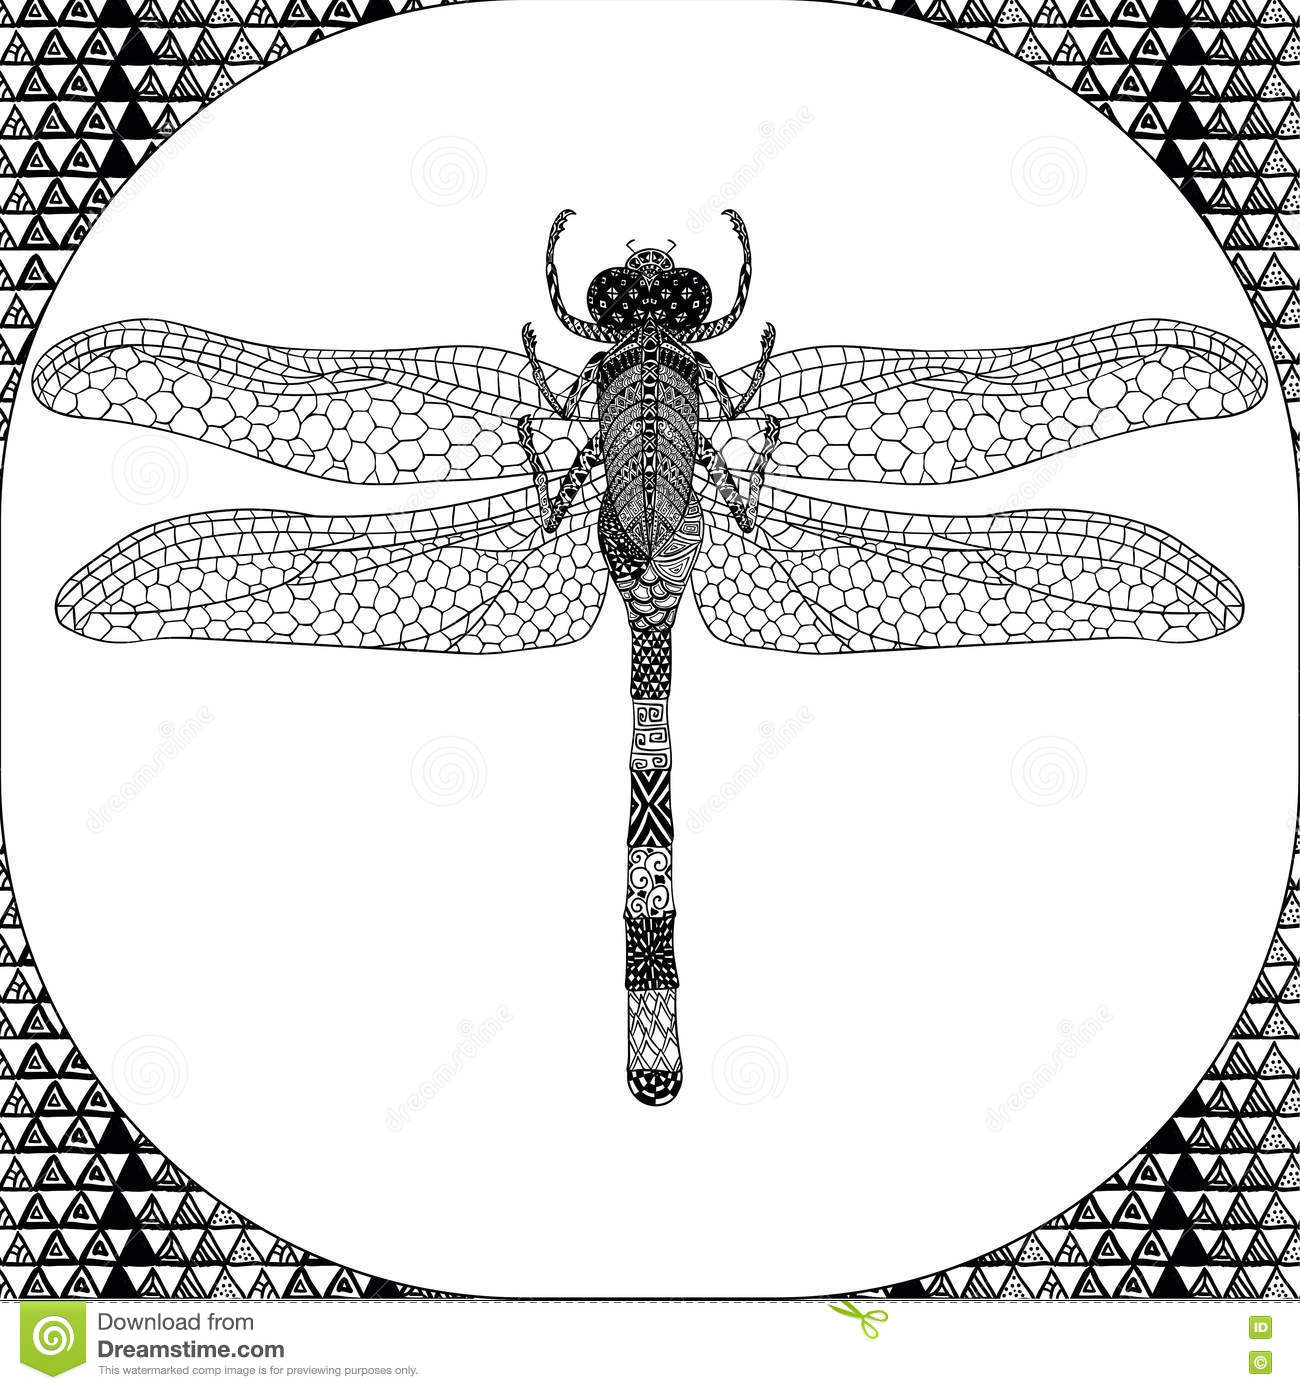 Coloring Page Of Balck Dragonfly, Zentangle Illustartion Stock ...